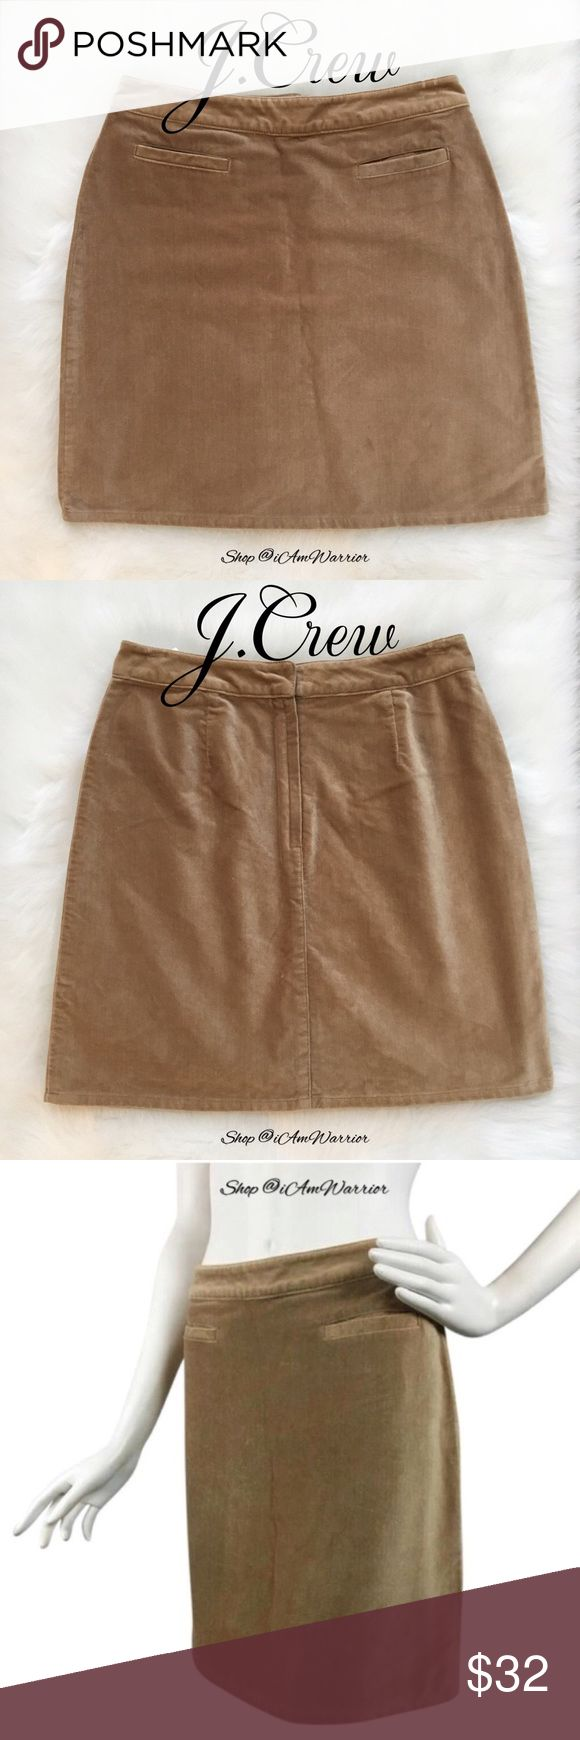 "🆕NWT J. Crew velvet mini skirt NWT J. Crew velvet mini skirt is perfect for Spring! Color is called almond, and depending on the light it looks tan to warm caramel in color. 20"" long, waist just shy of 14"" across. Even though a size 8, it fits a like a size 4/6. Please read my recently updated 'about me and my closet' listing for pricing/policies. J. Crew Skirts Mini"